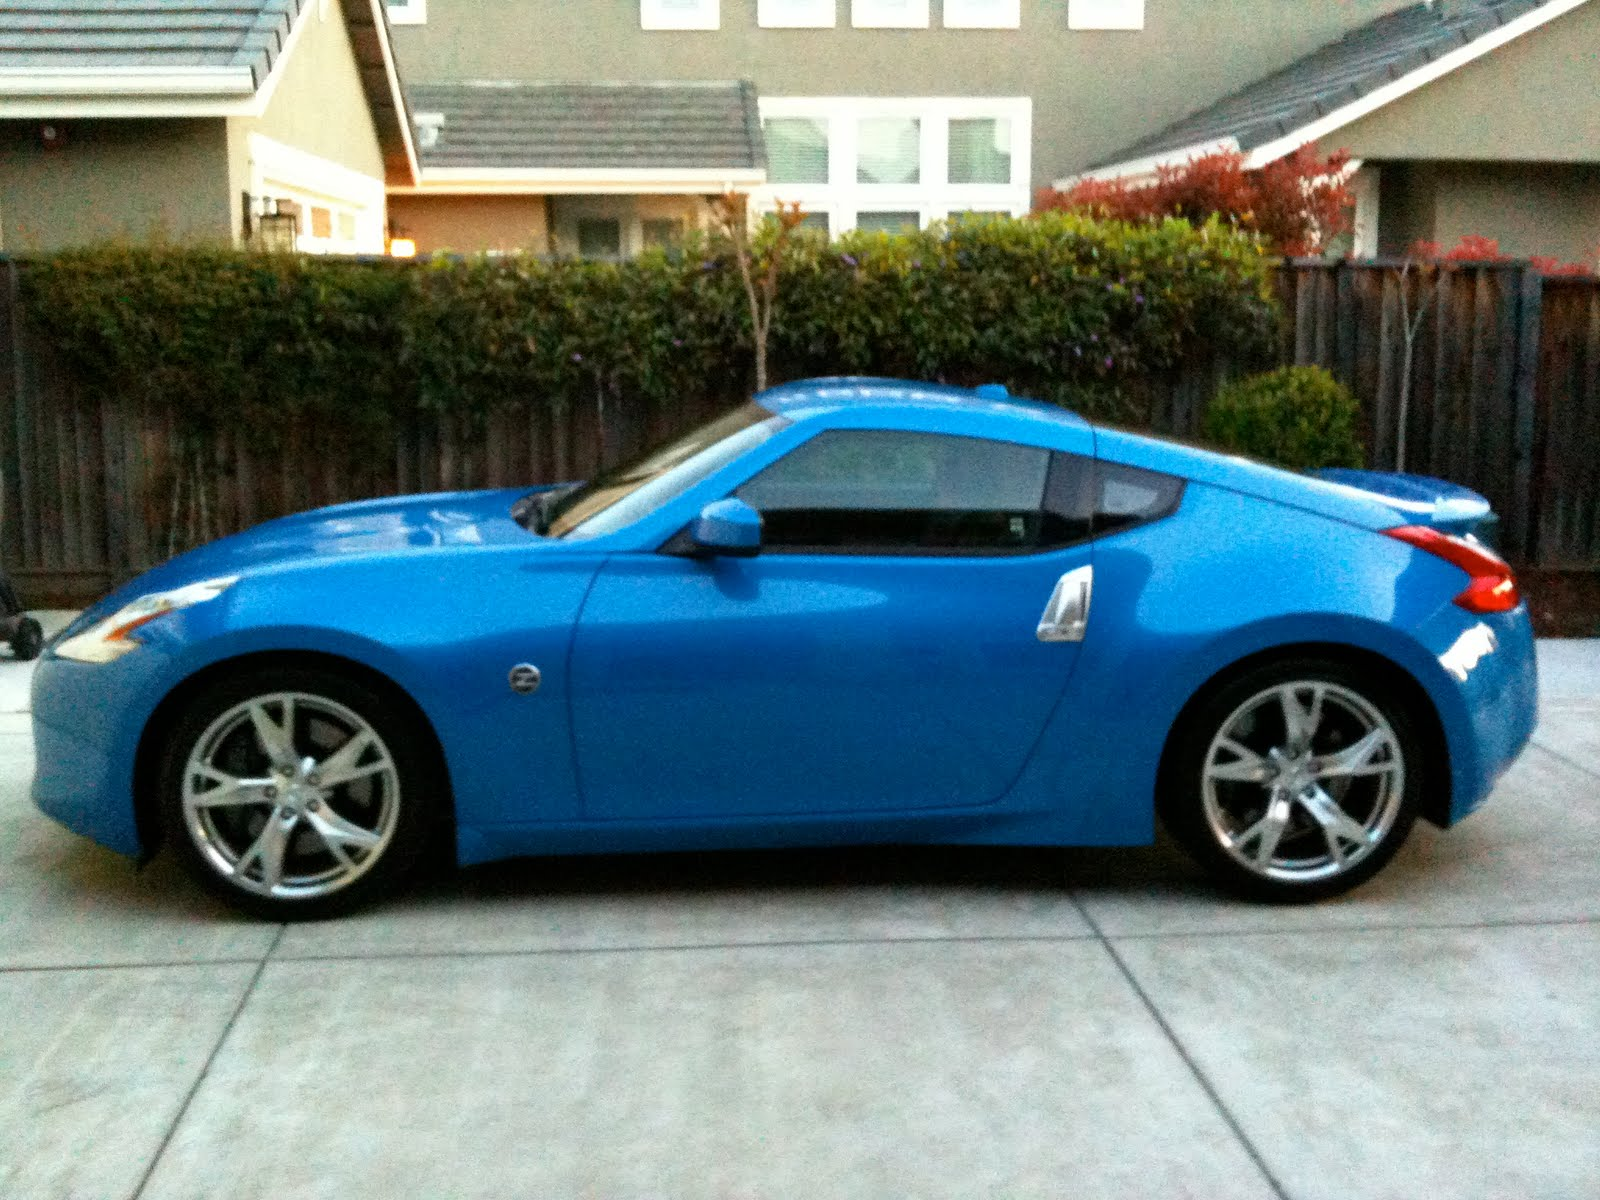 It's the best blue sports car